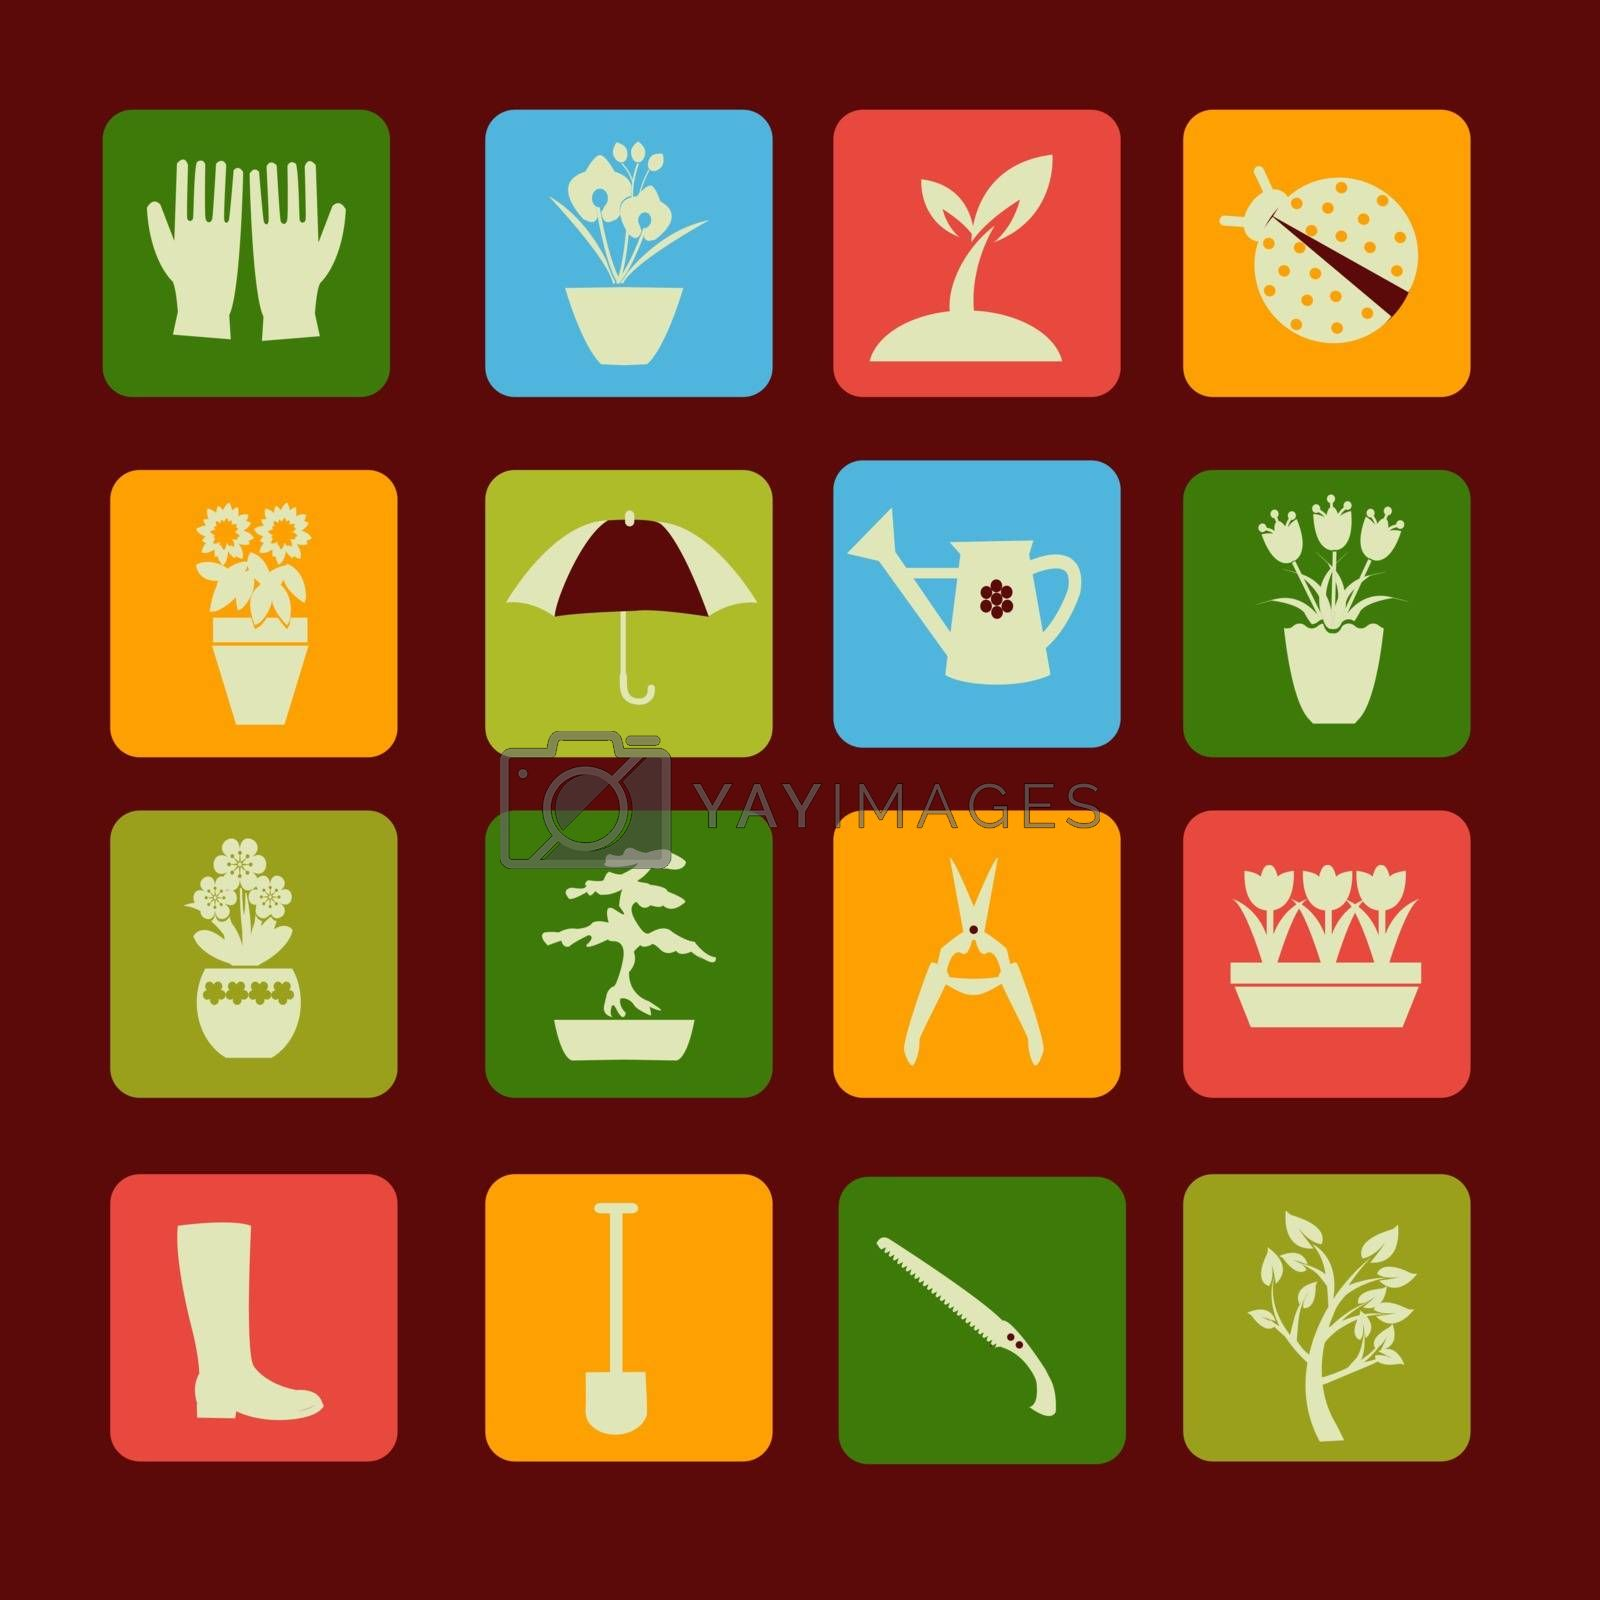 collection Set icons of gardening and spring related items  - Illustration